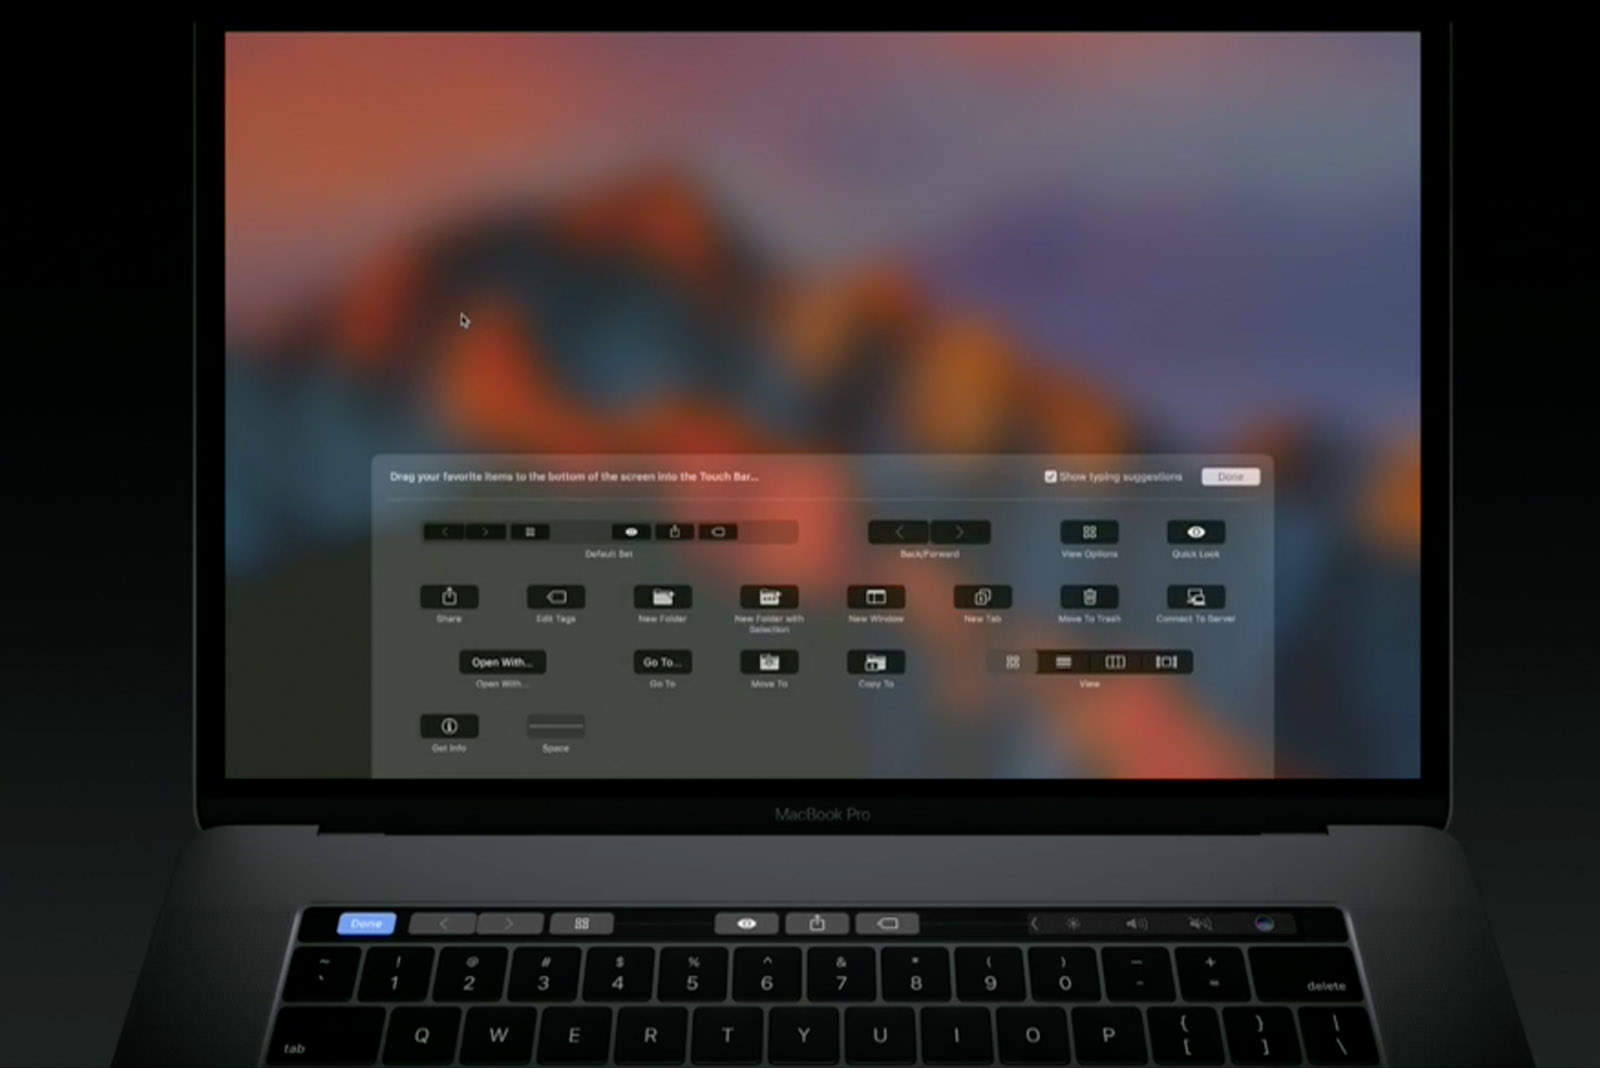 customized touch bar